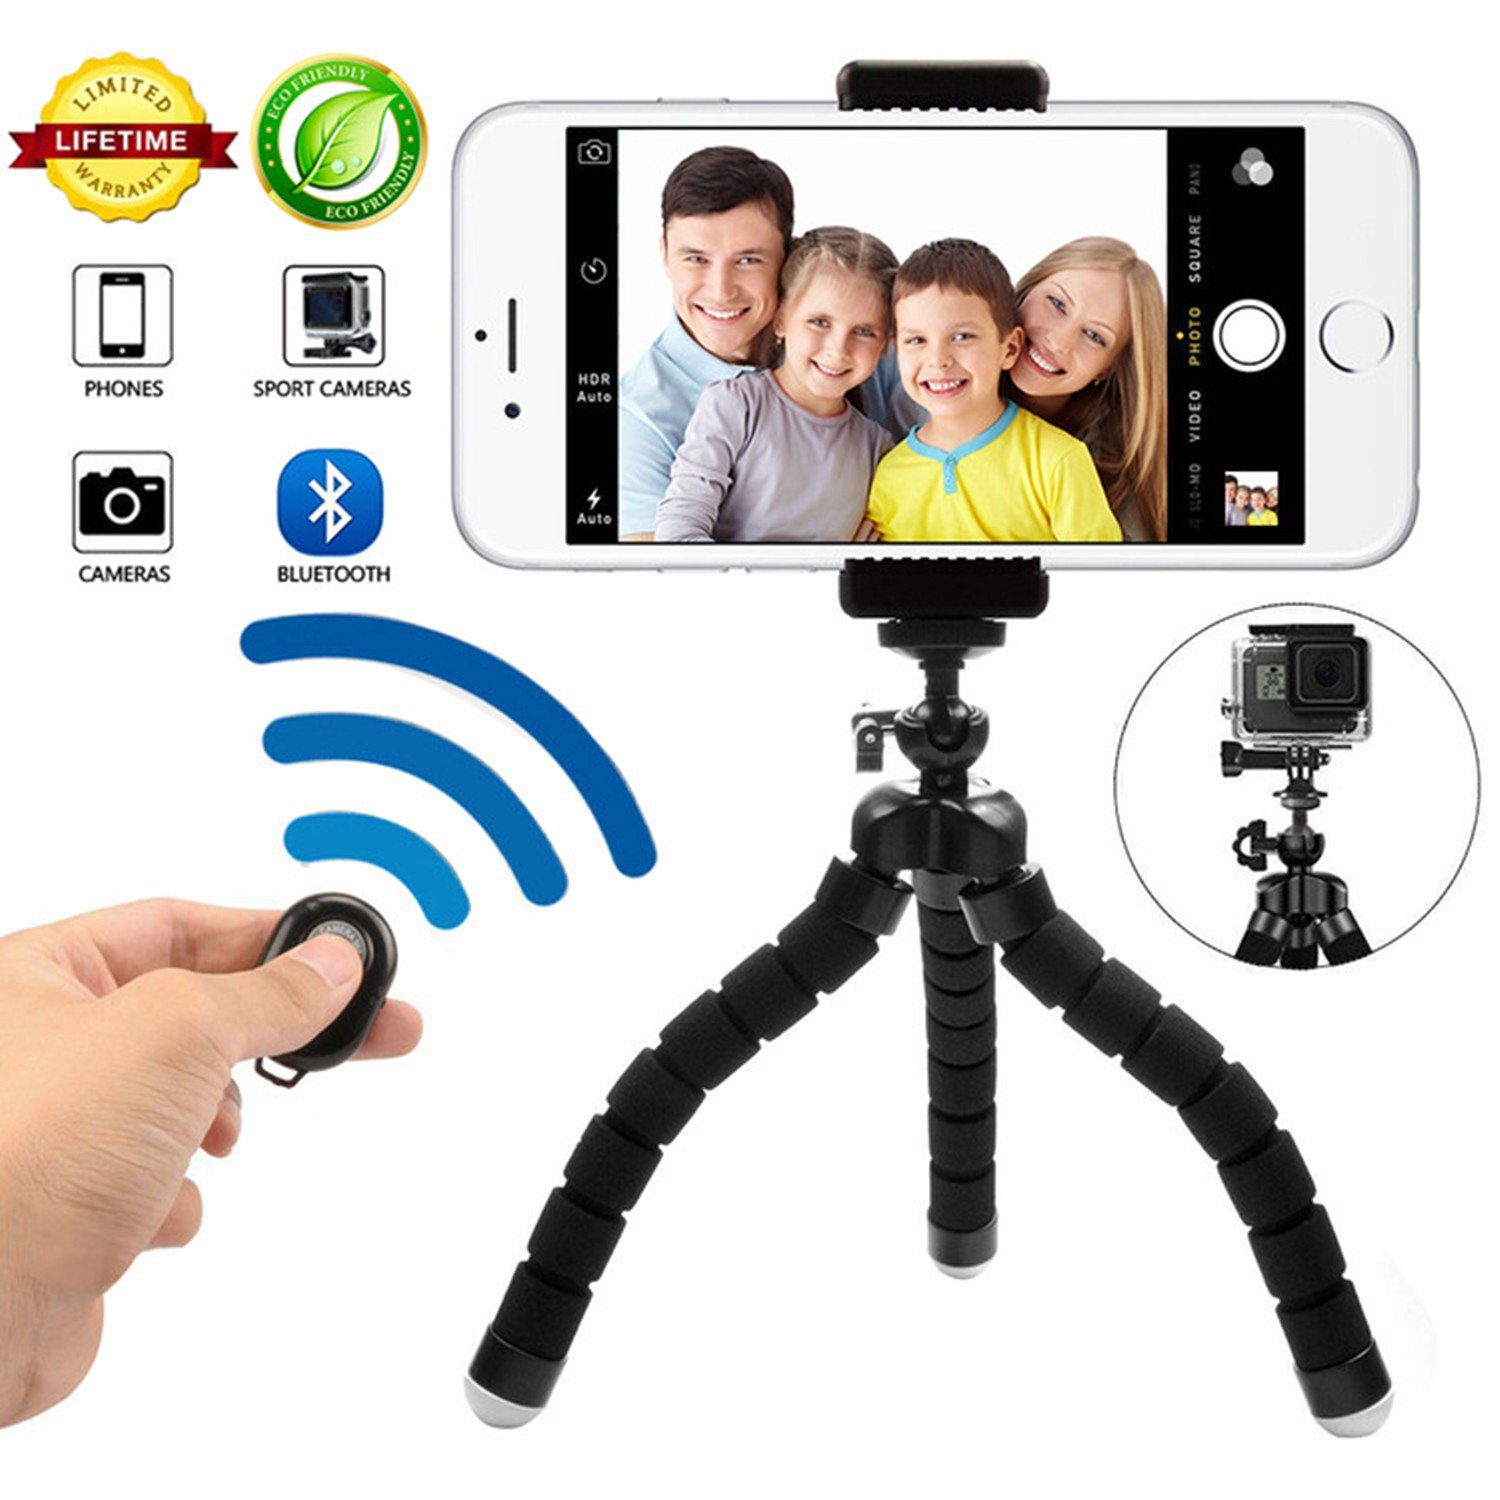 Phone Tripod Cell Phone Tripod Bluetooth Tripod Camera Tripod for IPhone X /8/8s /7/7 Plus /6s Plus /6s/ 6Plus/6/ SE/Samsung Galaxy S8 Plus/ S8 /Edge /S7 /Android Phone/DSRL and More